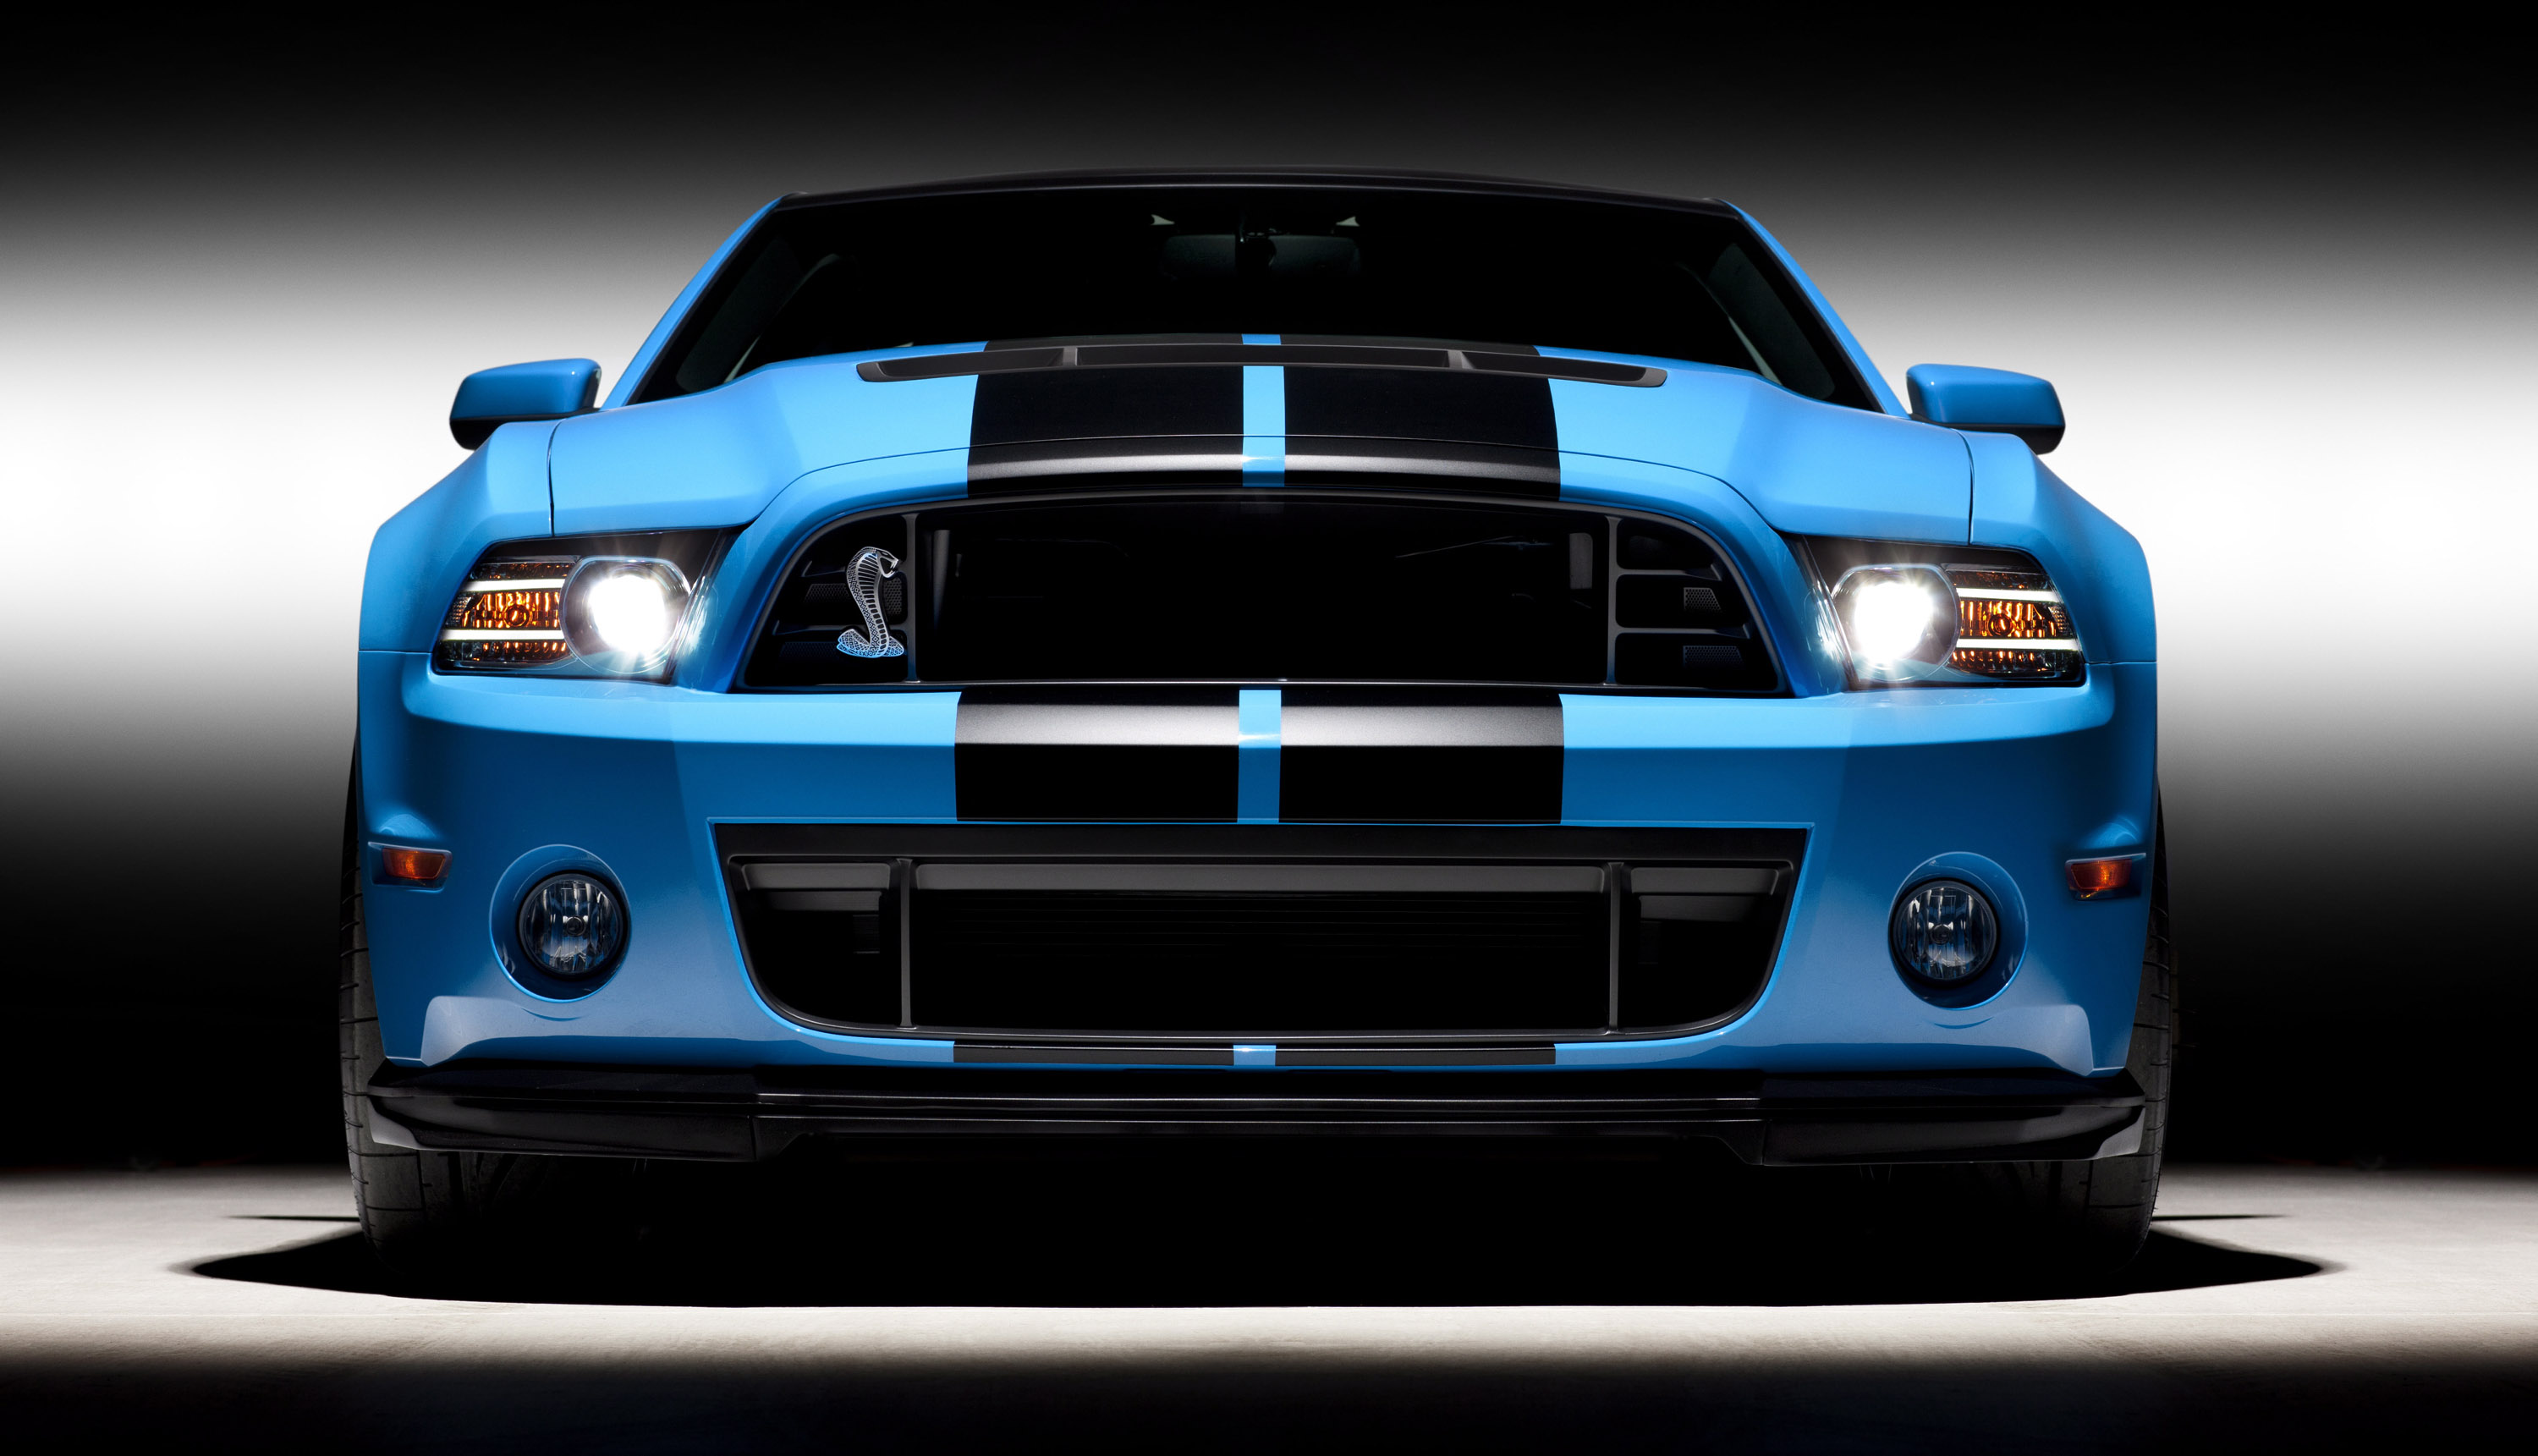 2013 Ford Shelby GT500 Picture #2 of 11